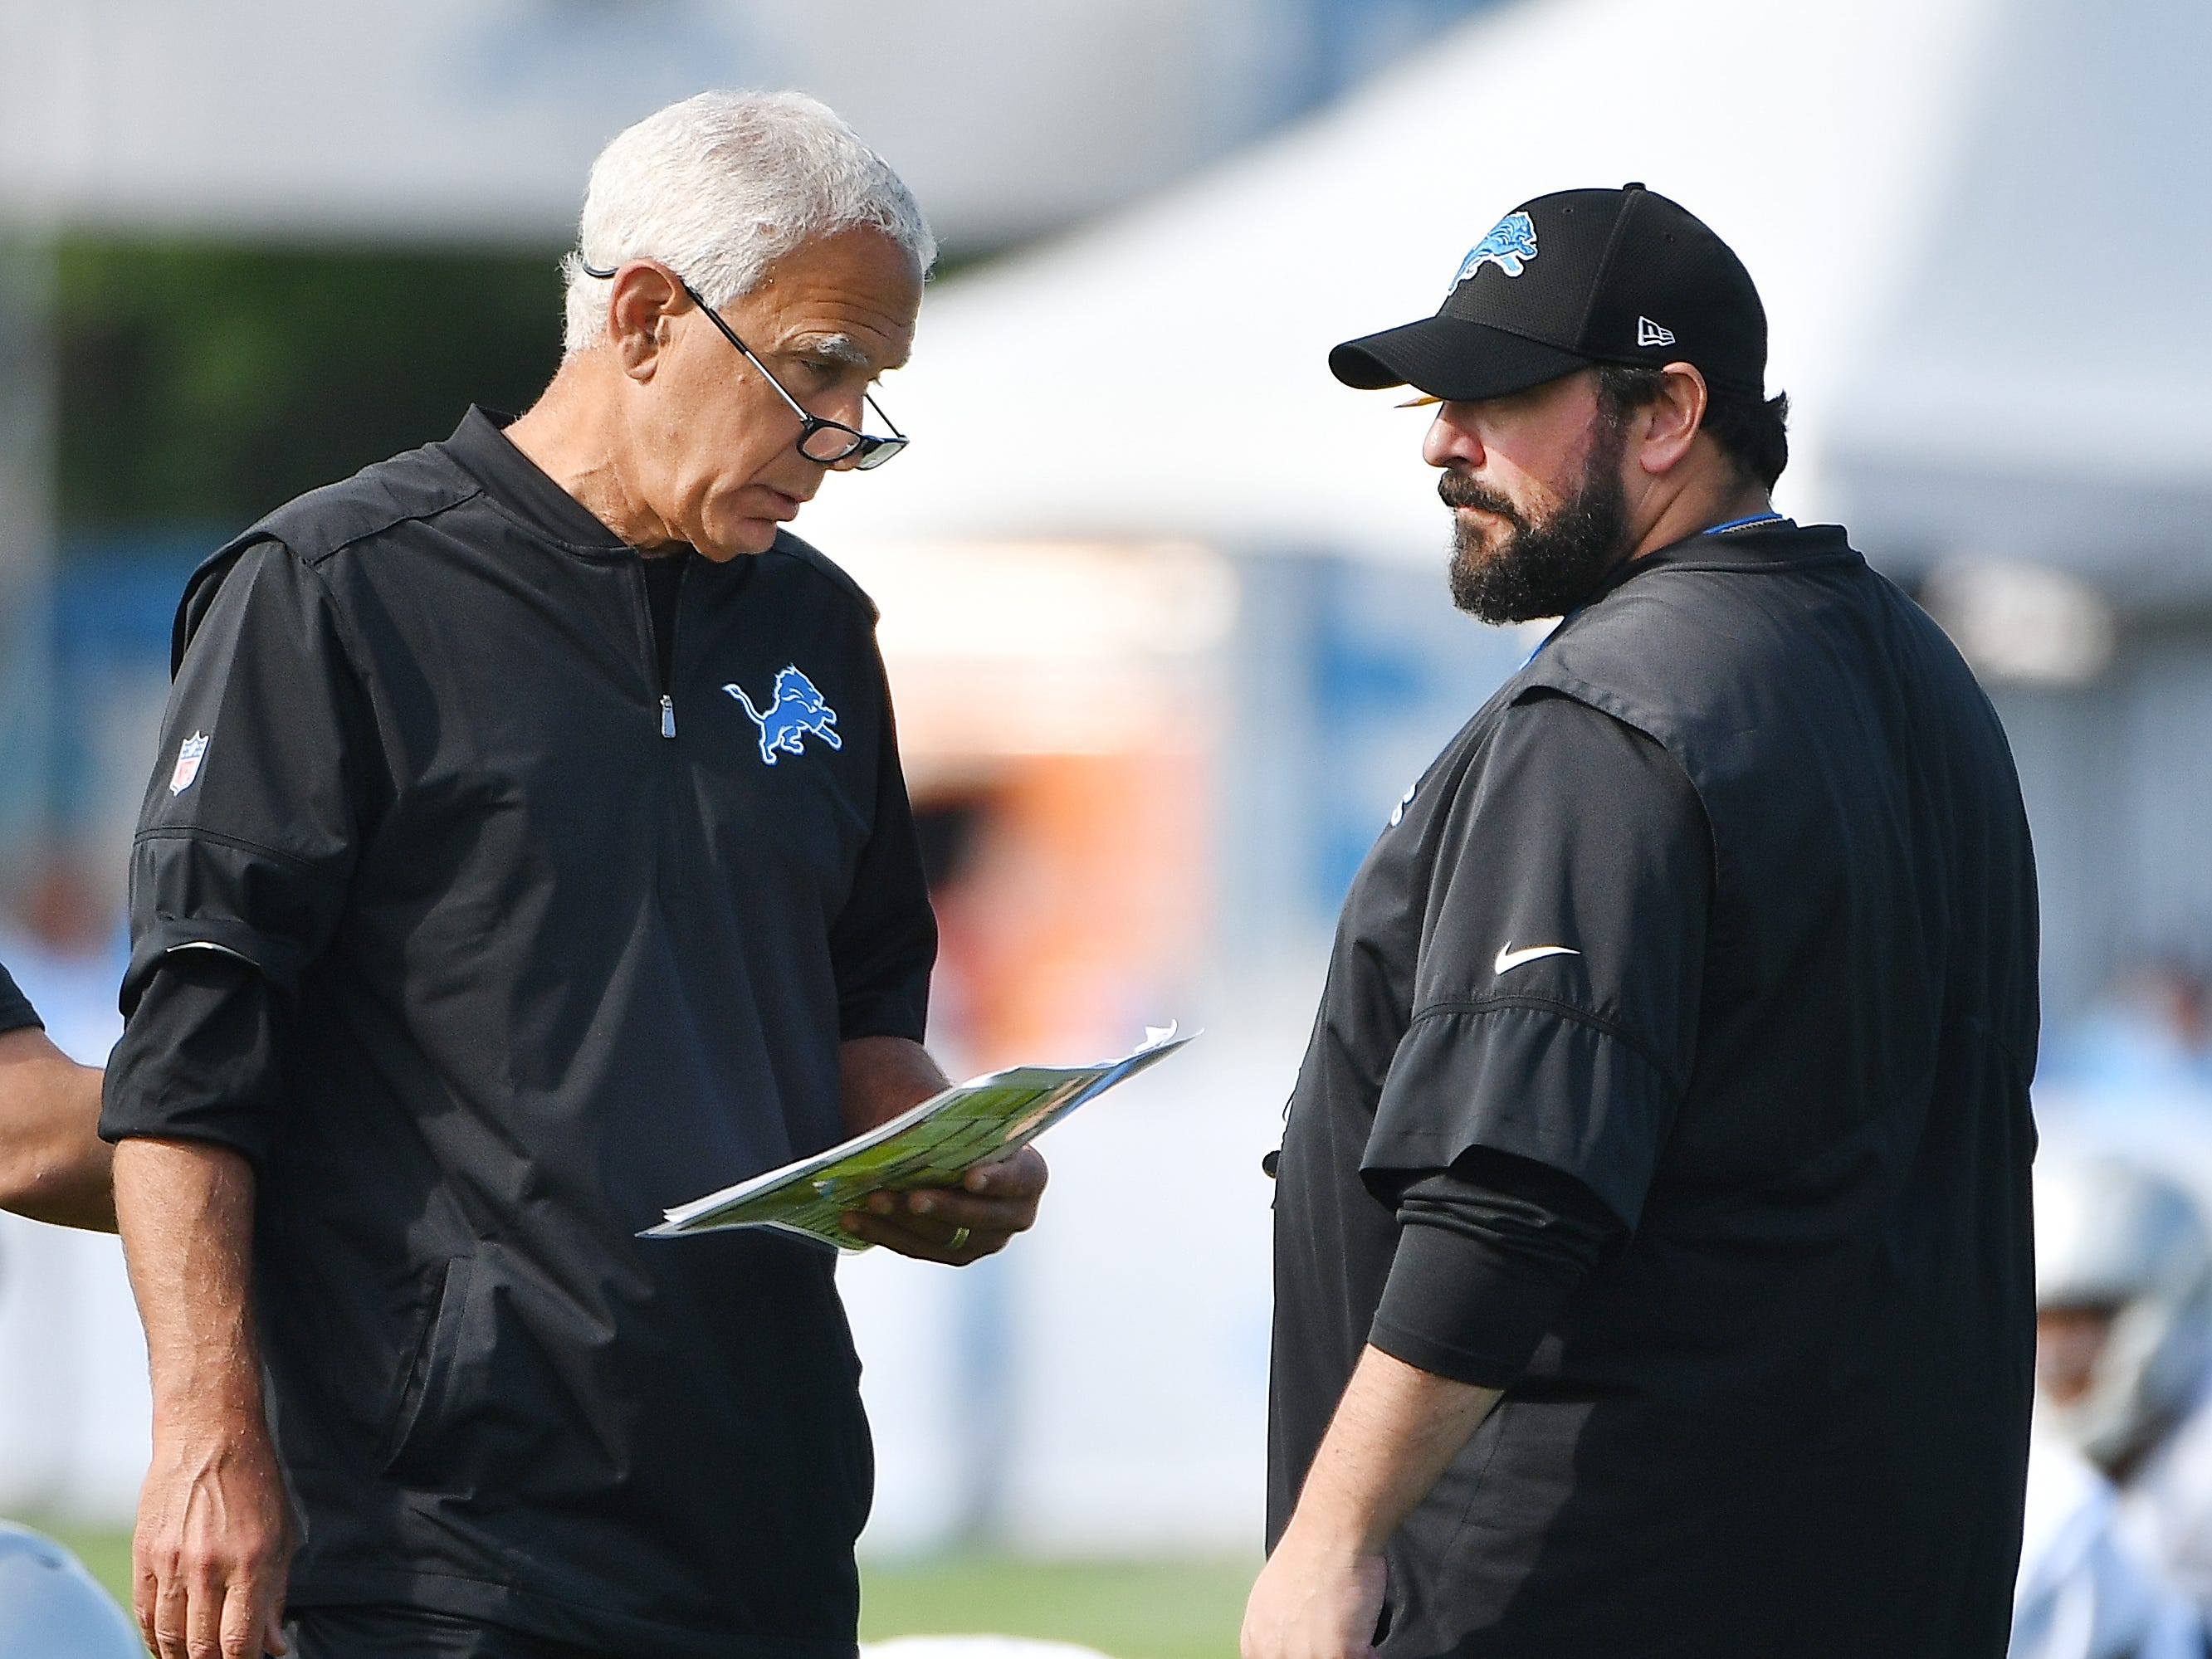 Lions defensive coordinator Paul Pasqualoni and head coach Matt Patricia talk on the field during stretching.